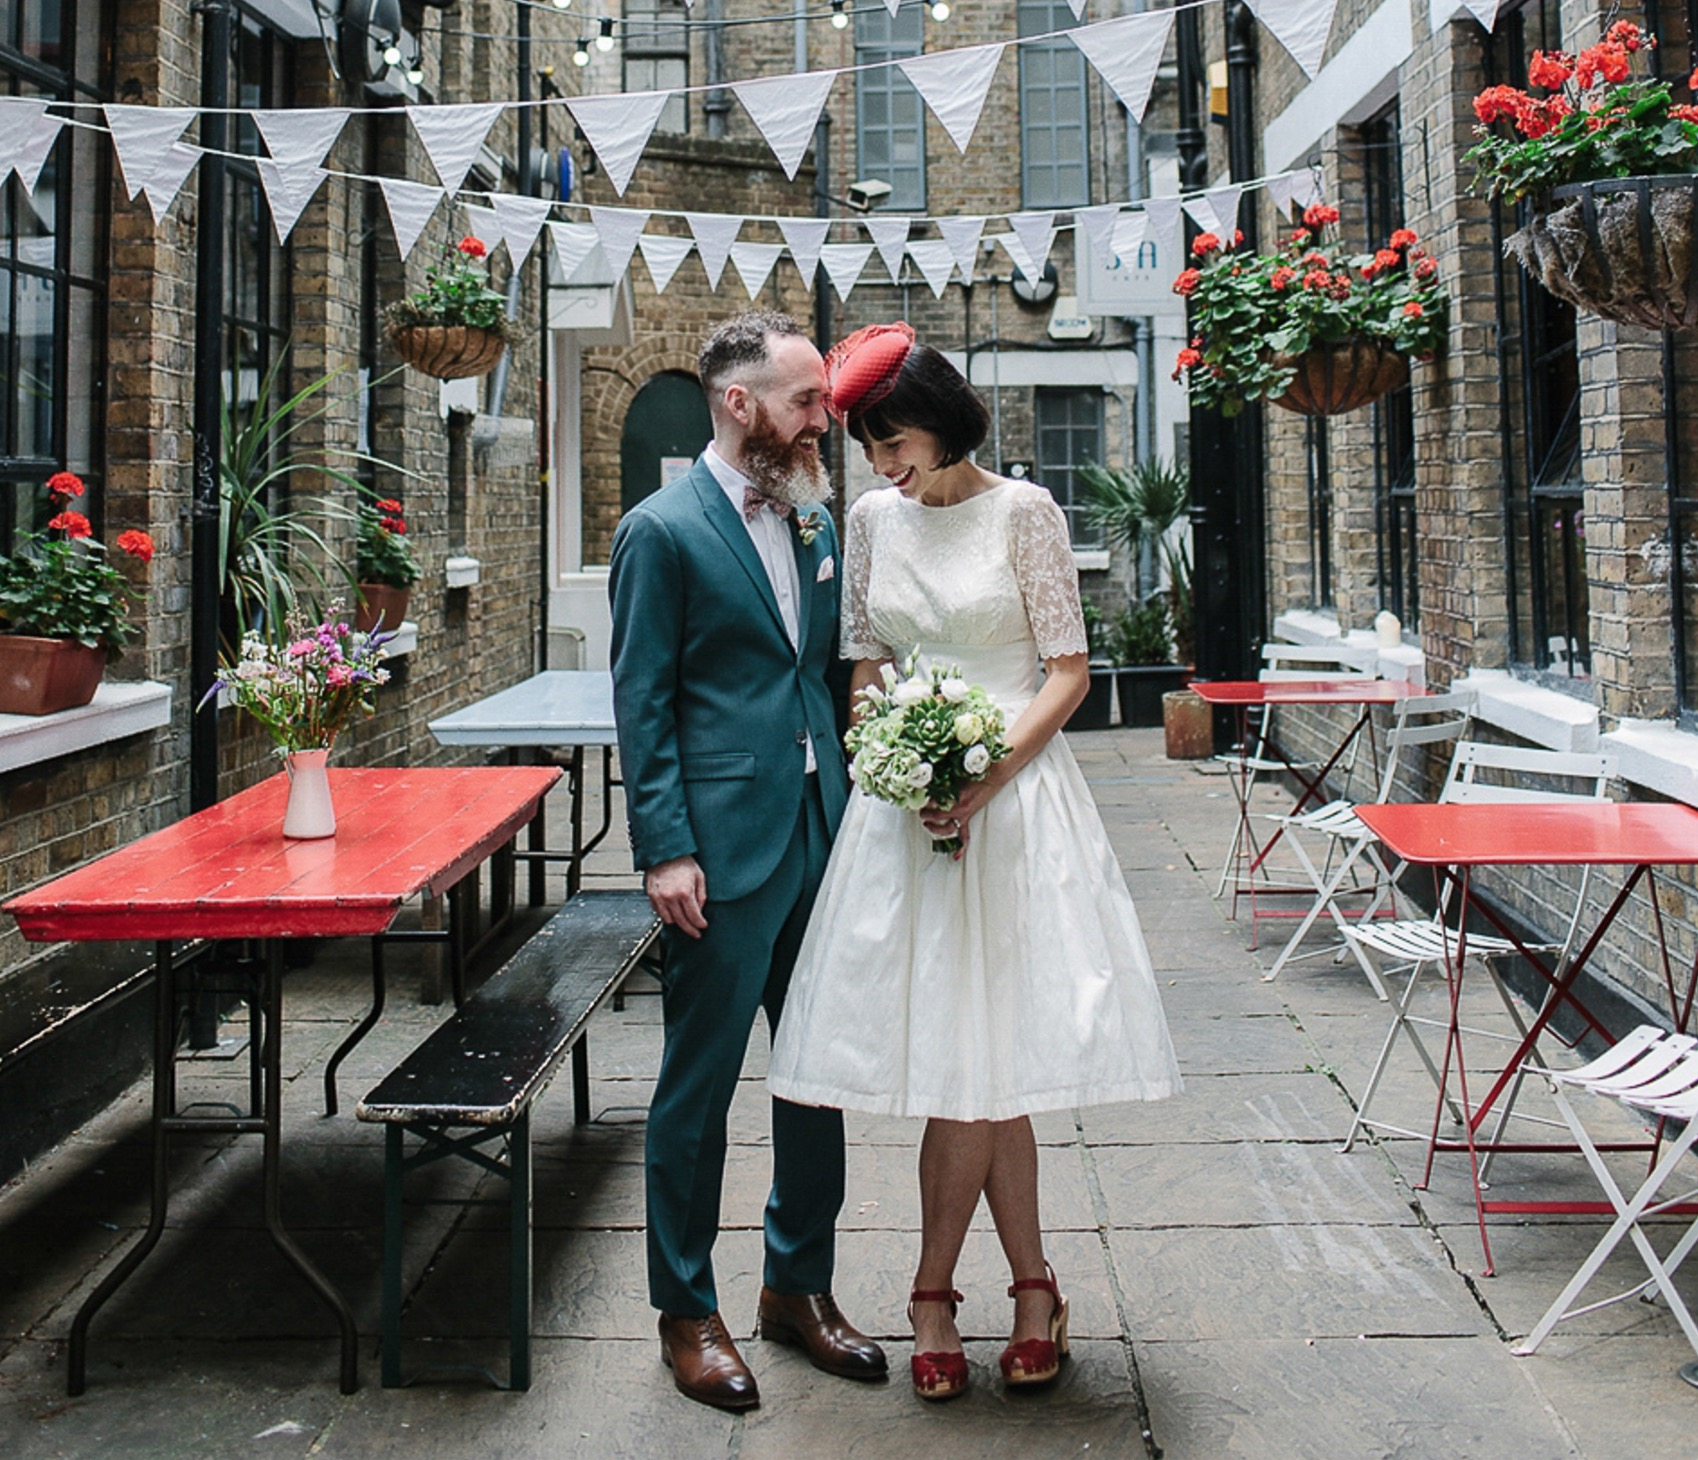 A Red Pillbox Hat and Swedish Hasbeens for an Intimate London Cafe Wedding